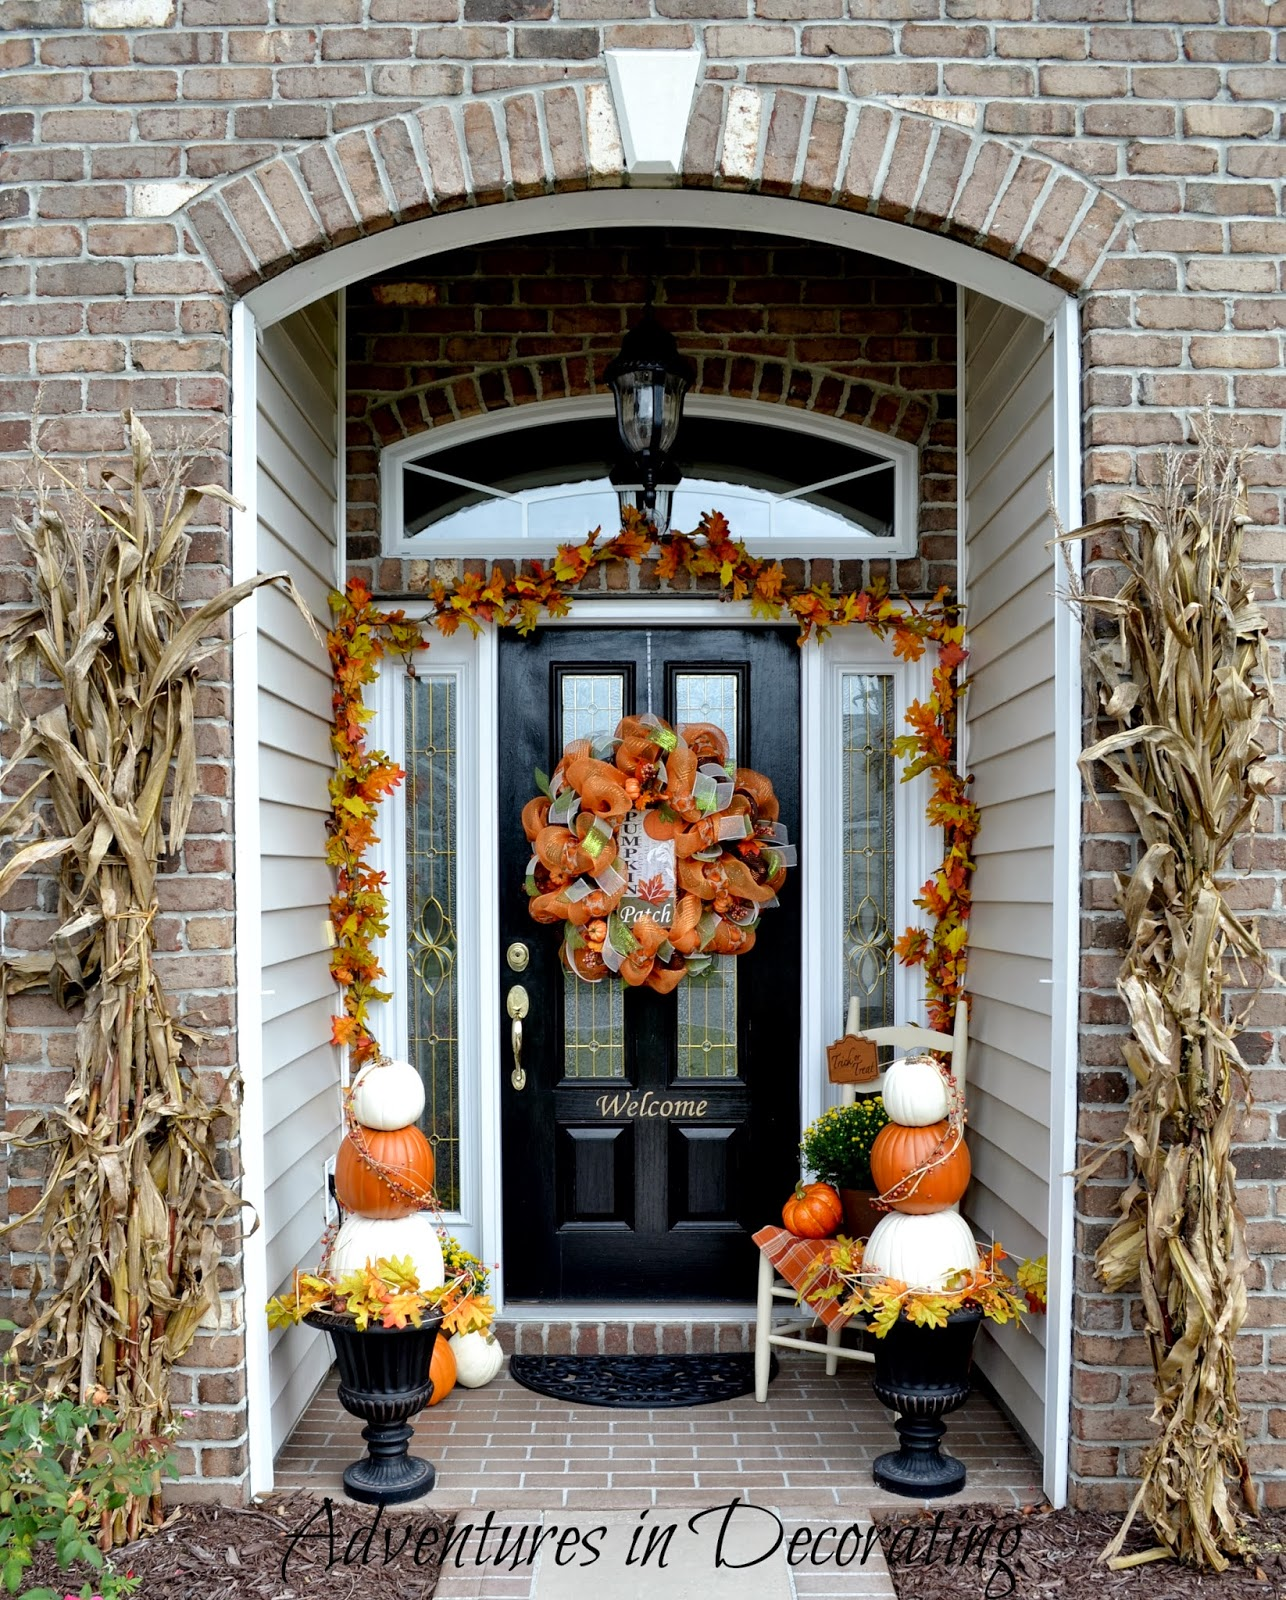 Front Porch Decorating: Adventures In Decorating: Our Fall Front Porch